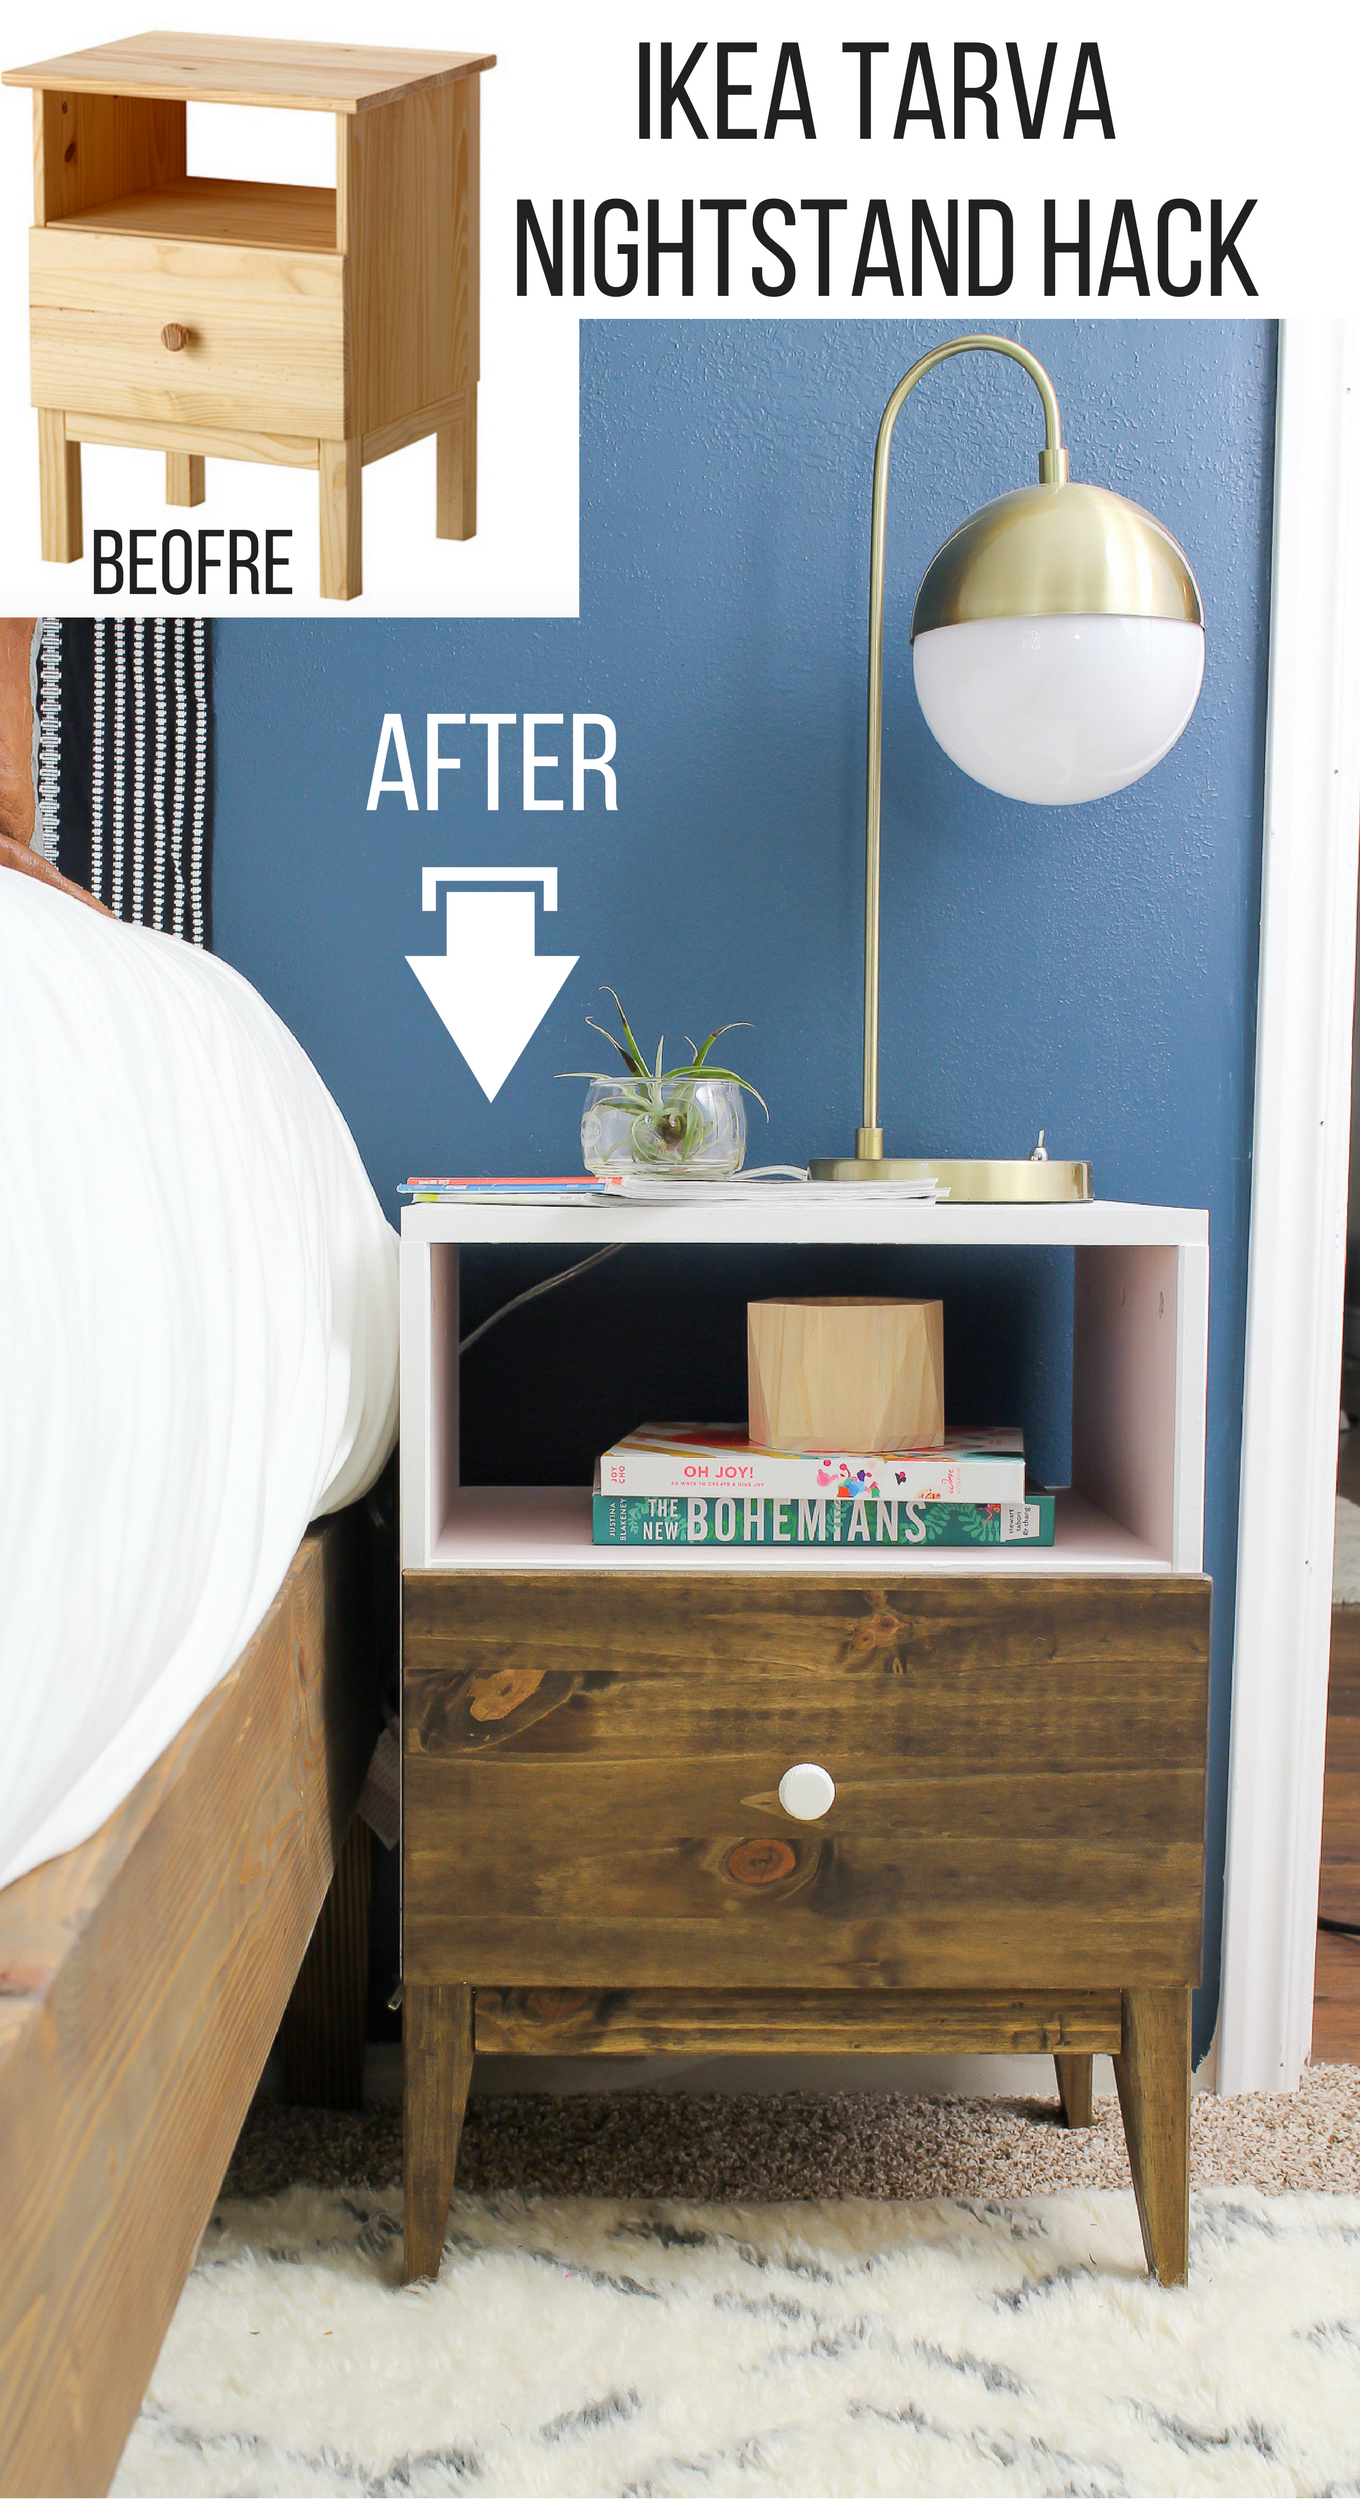 ikea tarva nightstand hack ikea did it again in 2018 home pinterest schlafzimmer ablage. Black Bedroom Furniture Sets. Home Design Ideas